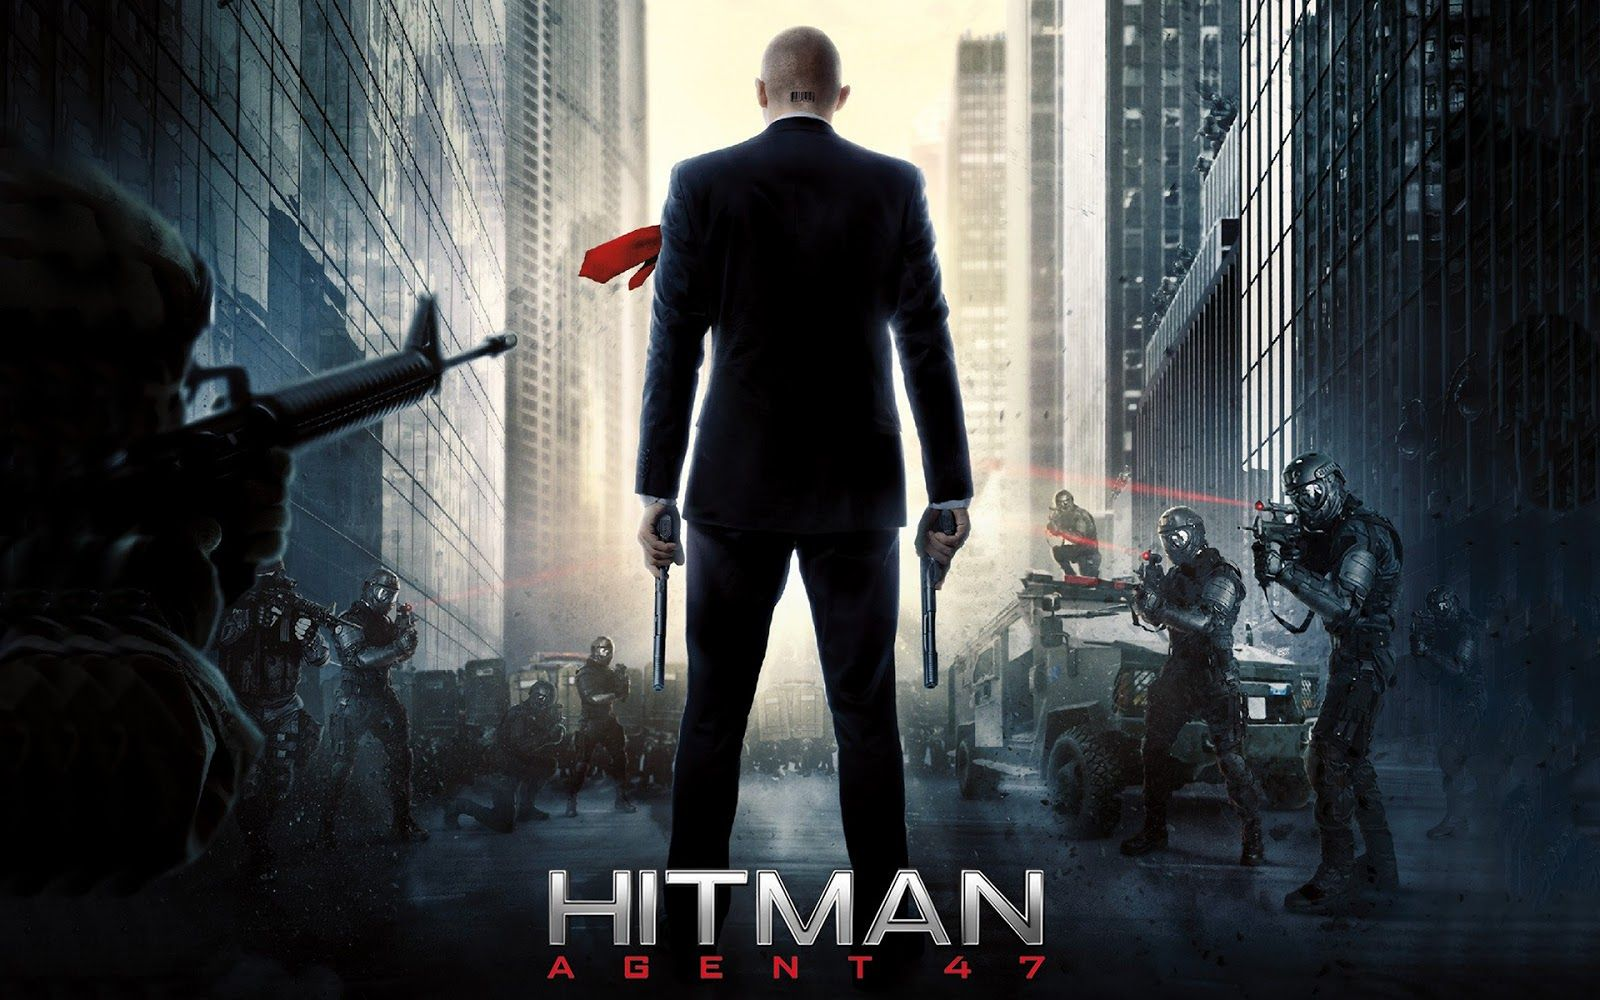 Hitman Agent 47 2015 Download Hollywood Movies Hitman Agent 47